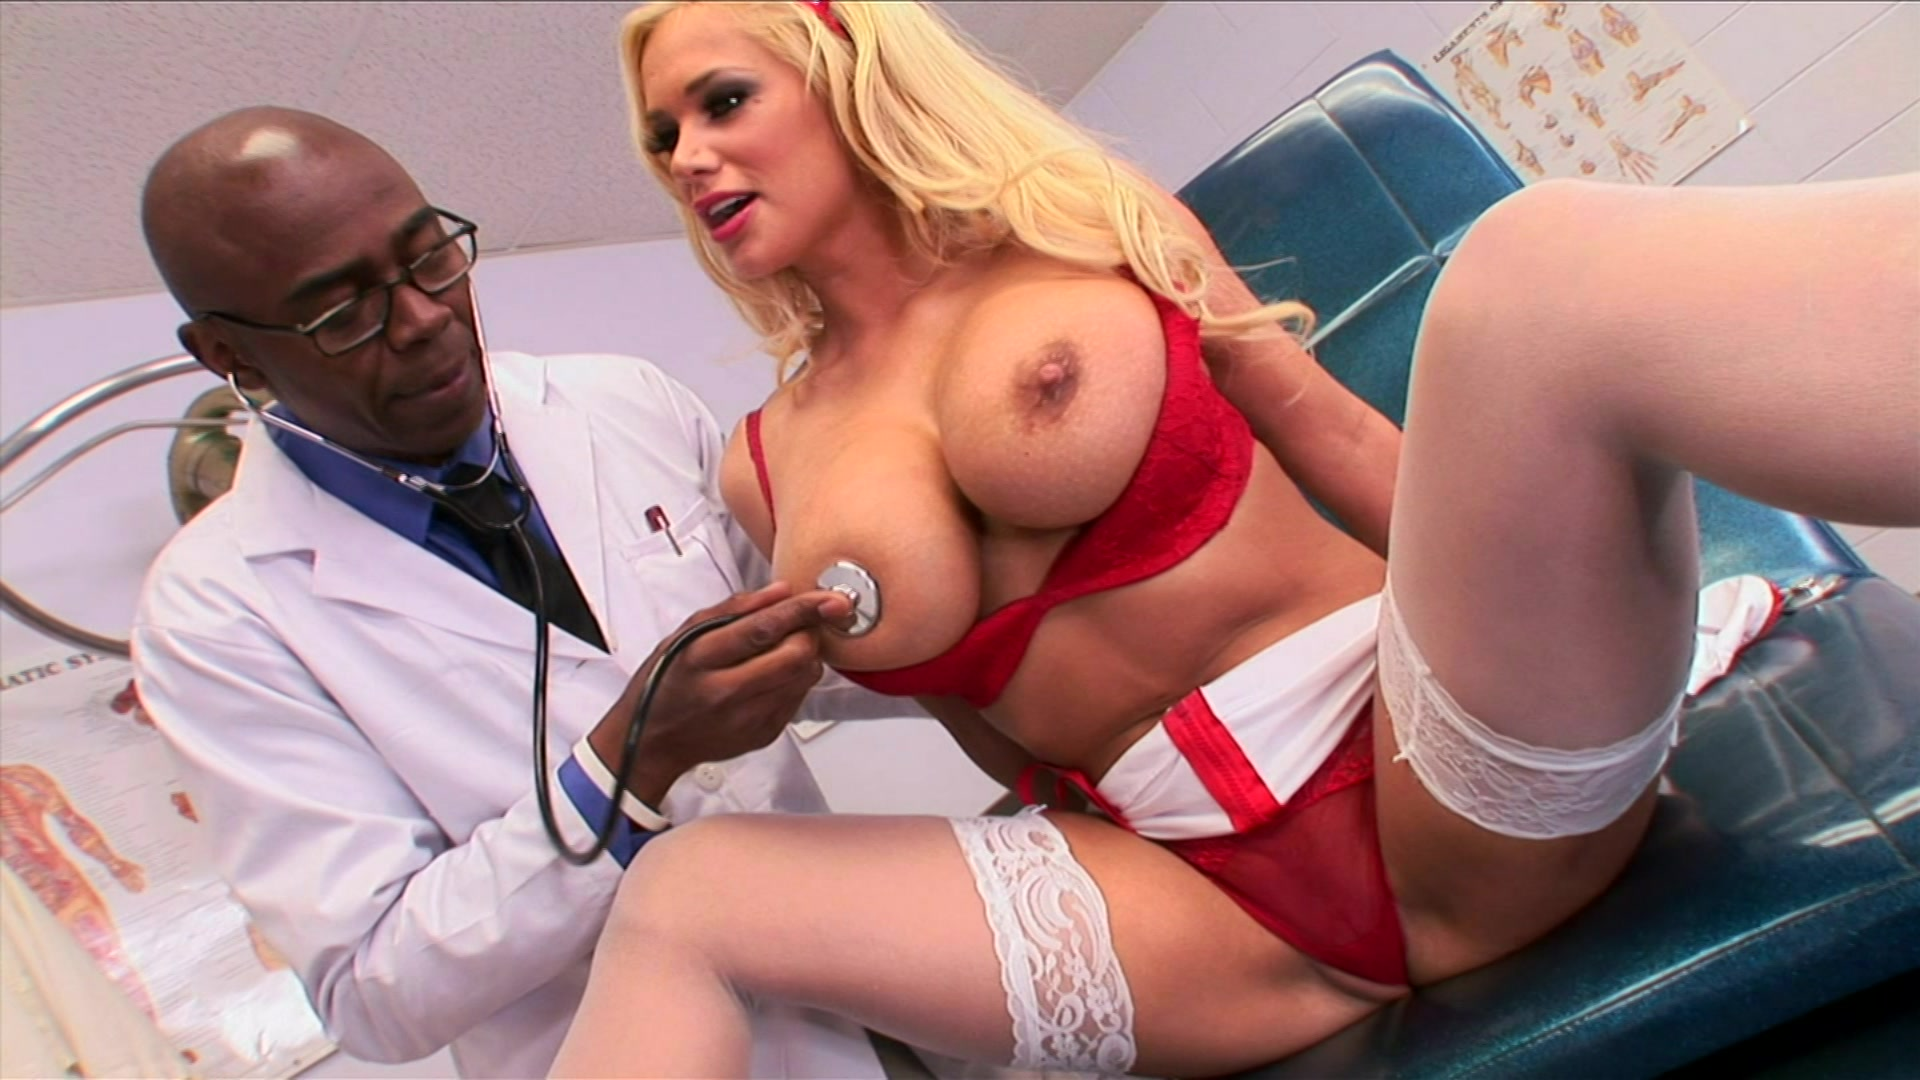 Naughty nurse tigerr benson puts her big double ds on display for the